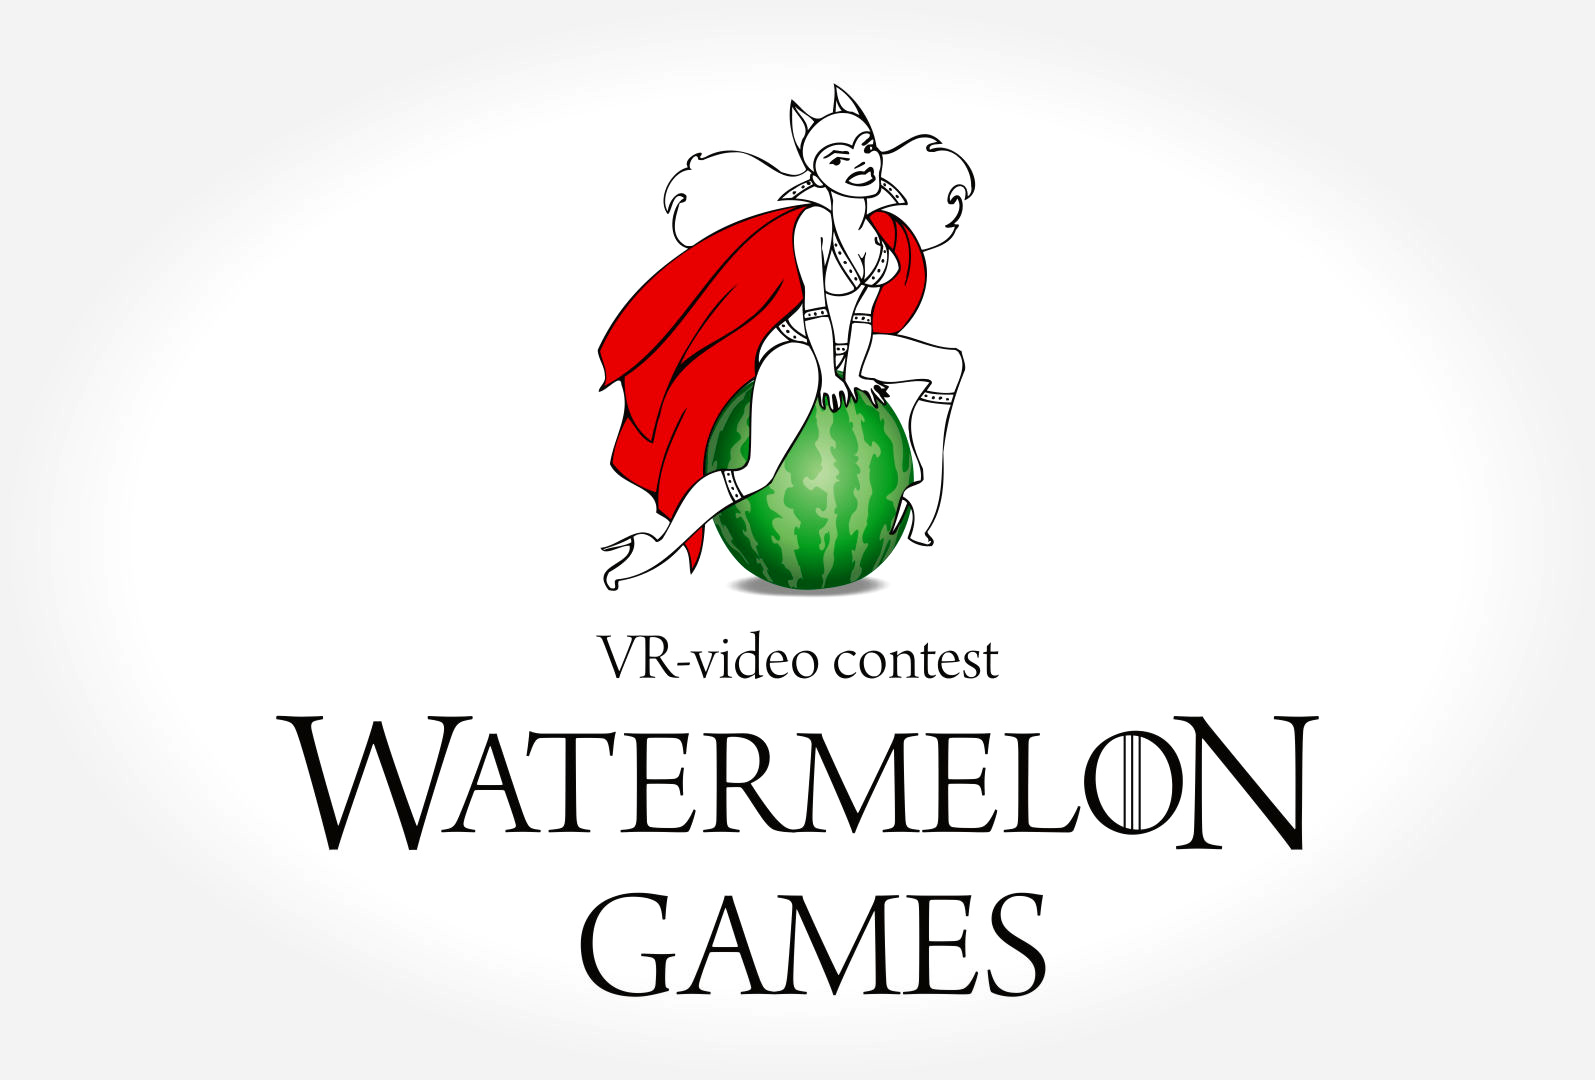 Анонс конкурса Watermelon Games